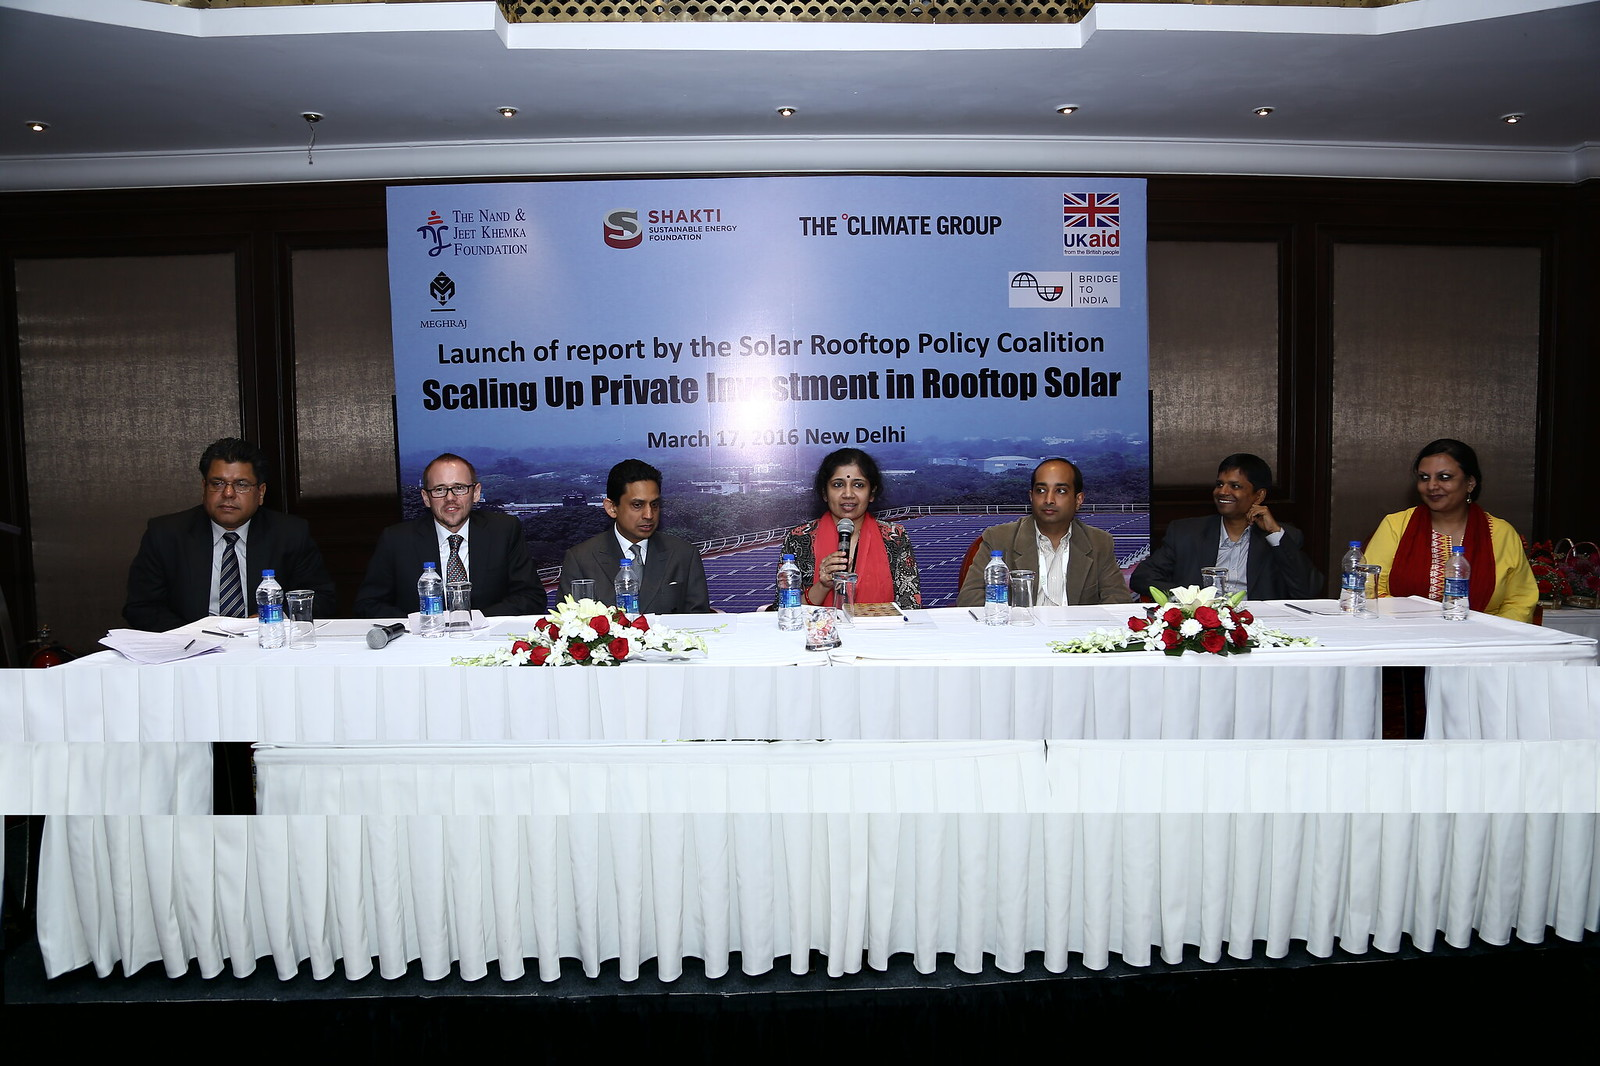 Scaling Up Private Investment in Rooftop Solar